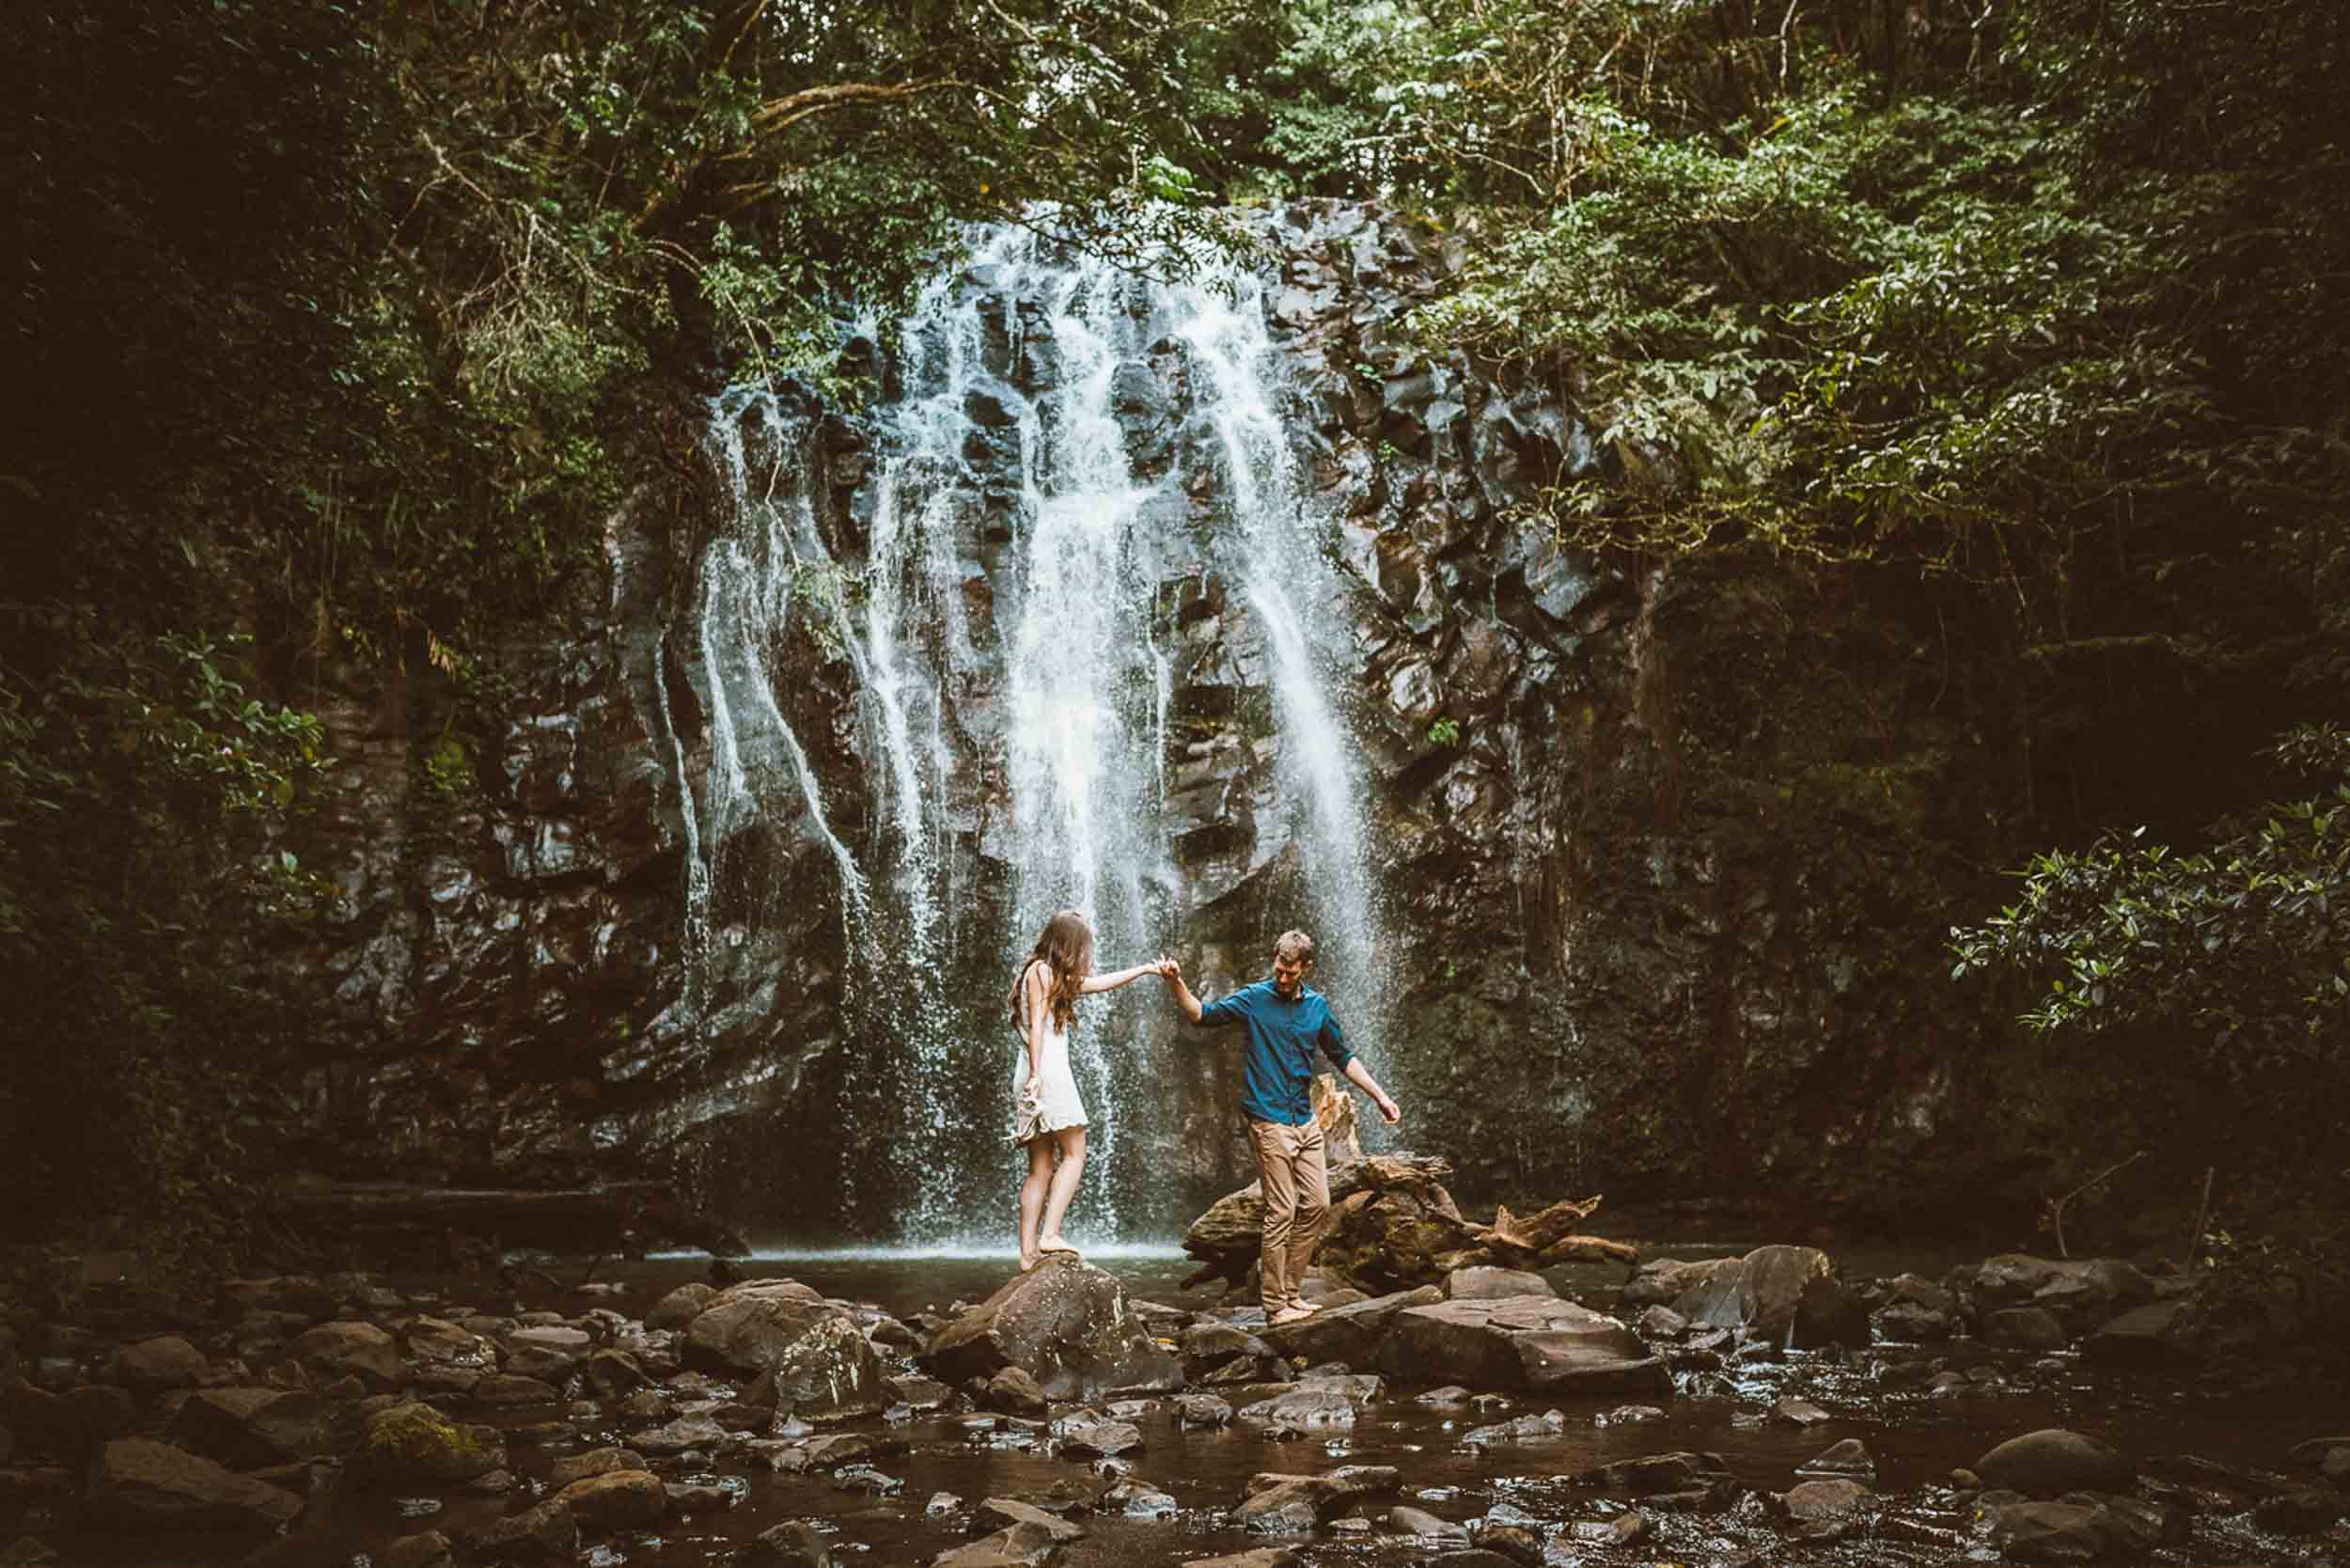 The Raw Photographer - Wedding Photographer - Tablelands Mareeba Atherton Engagement- Couple Session Photos in Cairns - Engaged Price - Rainforest Waterfall Queensland - photoshoot-16.jpg